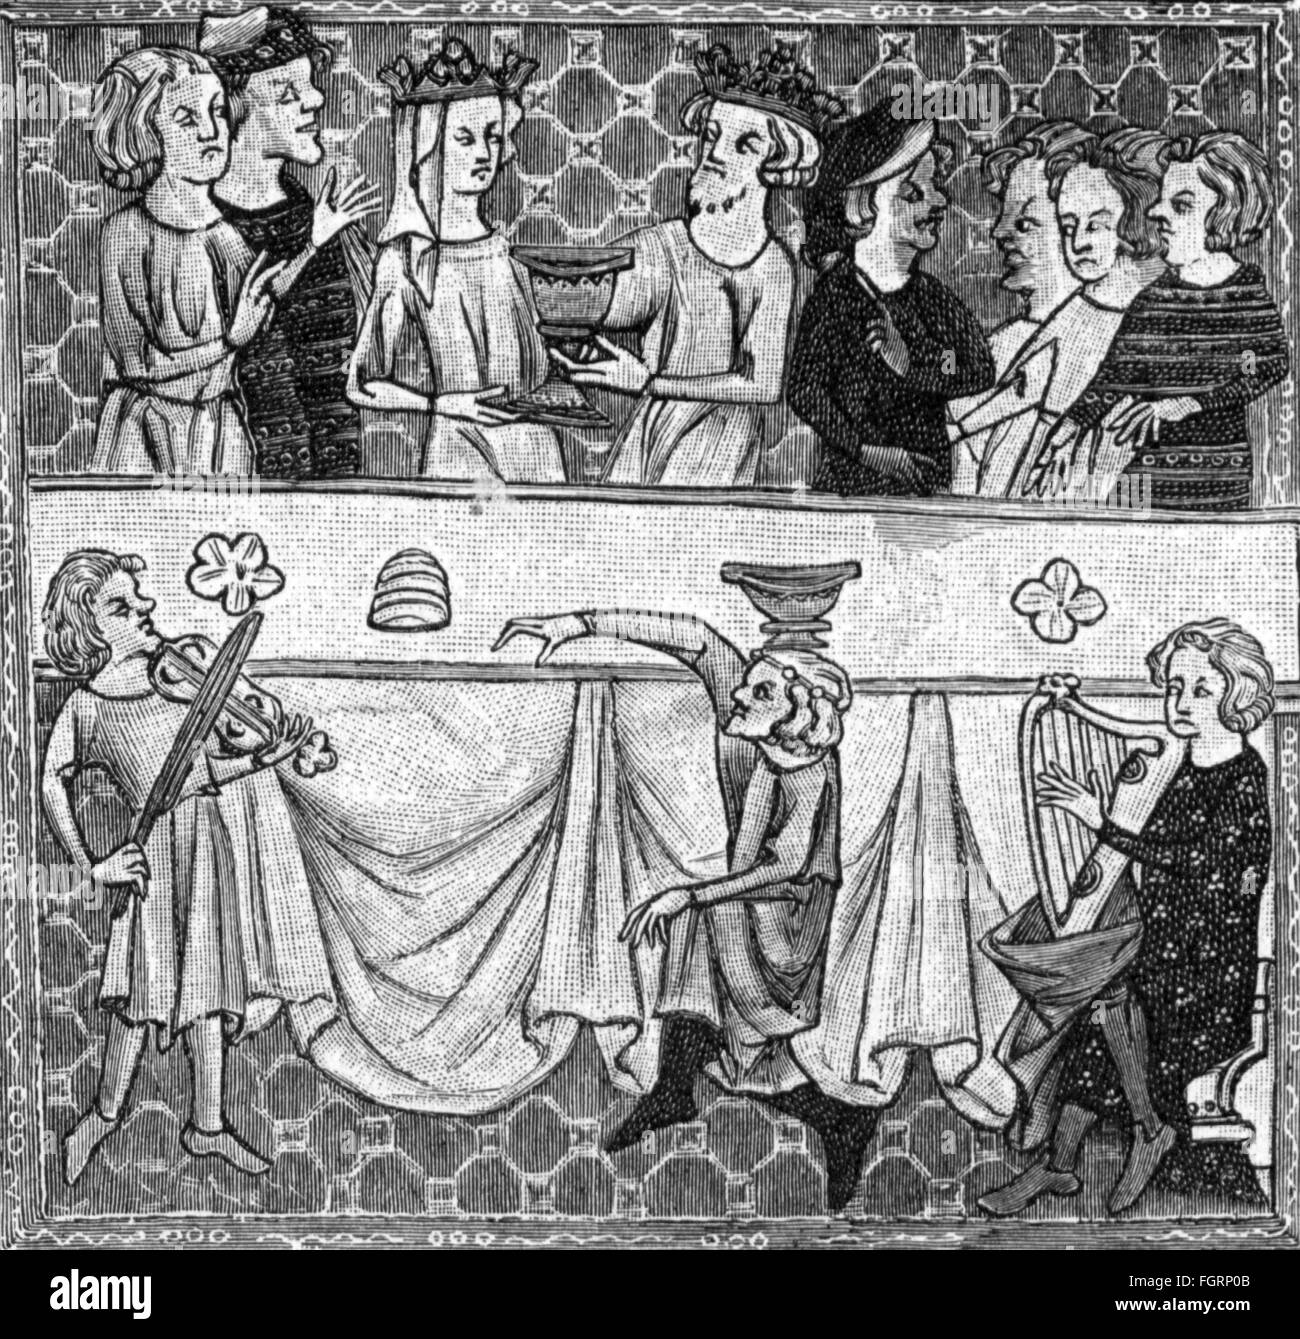 Middle Ages, society, festive table, after miniature, France, 14th century, wood engraving, 19th century, feast, - Stock Image